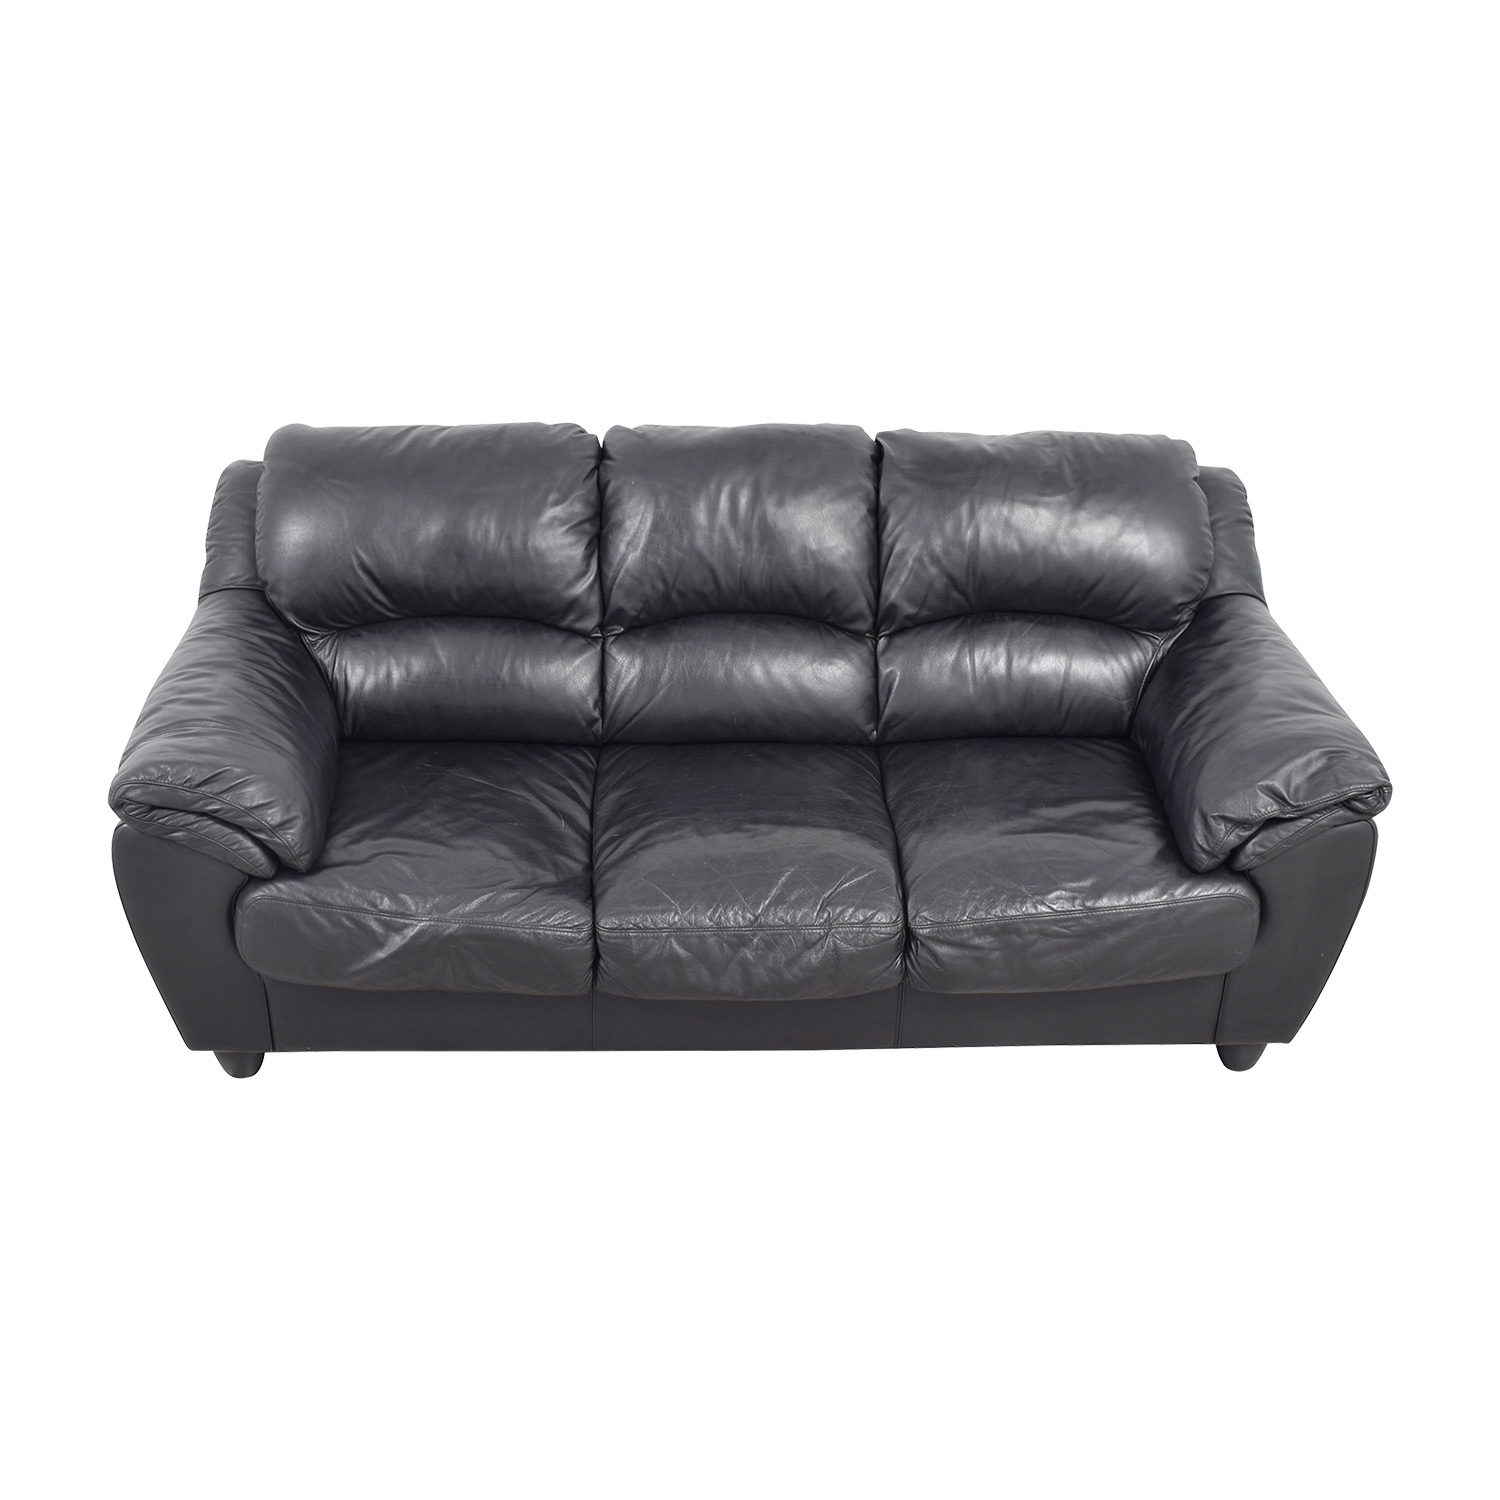 Raymour And Flanigan Leather Sleeper Sofa